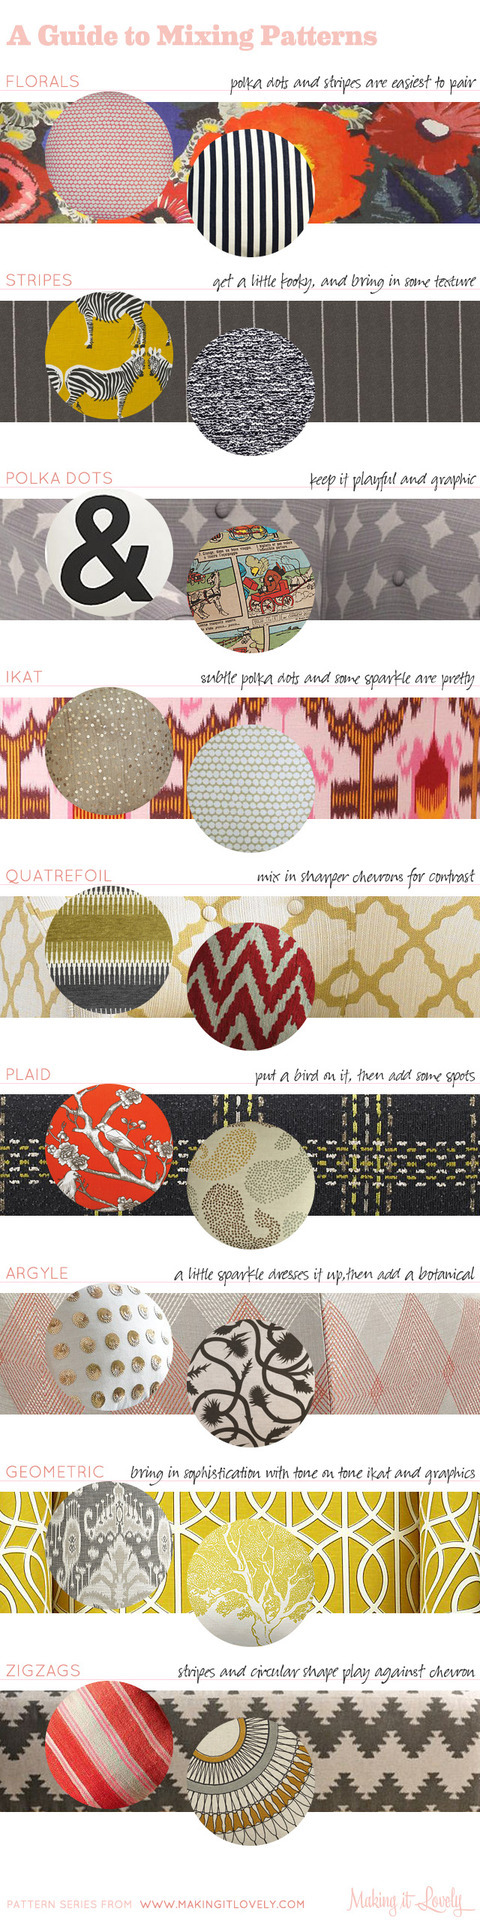 Click through to see an awesome Guide to Mixing Patterns In Your Home, which I will probably use to mix clothing patterns before I ever use it to mix patterns in my home.